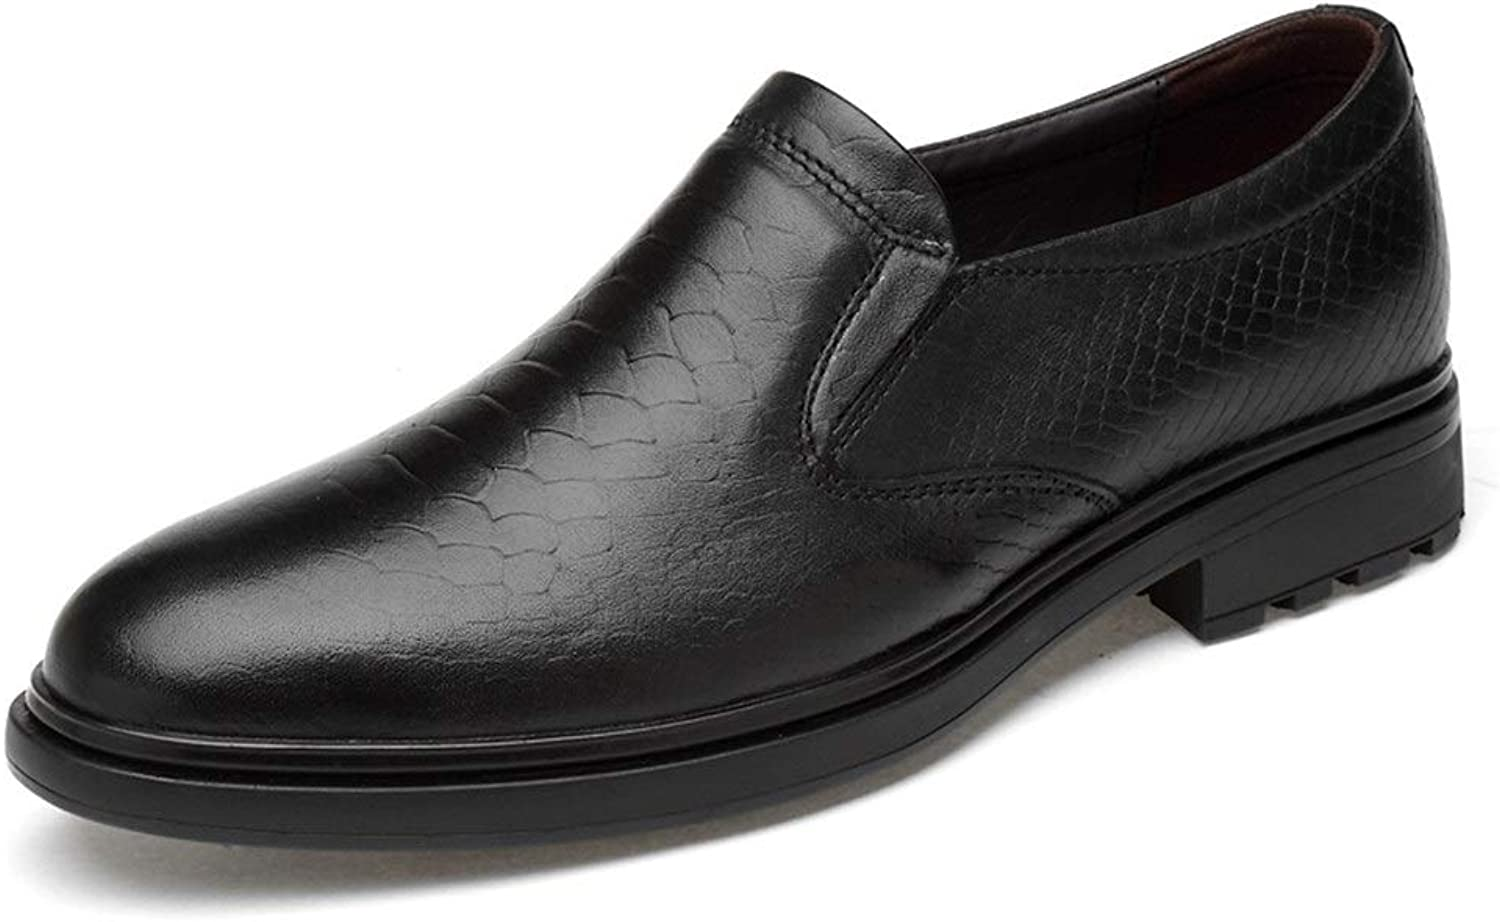 Easy Go Shopping Embossed Oxford shoes For Men Genuine Leather Business Dress Loafers Anti-slip Low Heel Slip-on Round Toe Cricket shoes (color   Black, Size   8 UK)